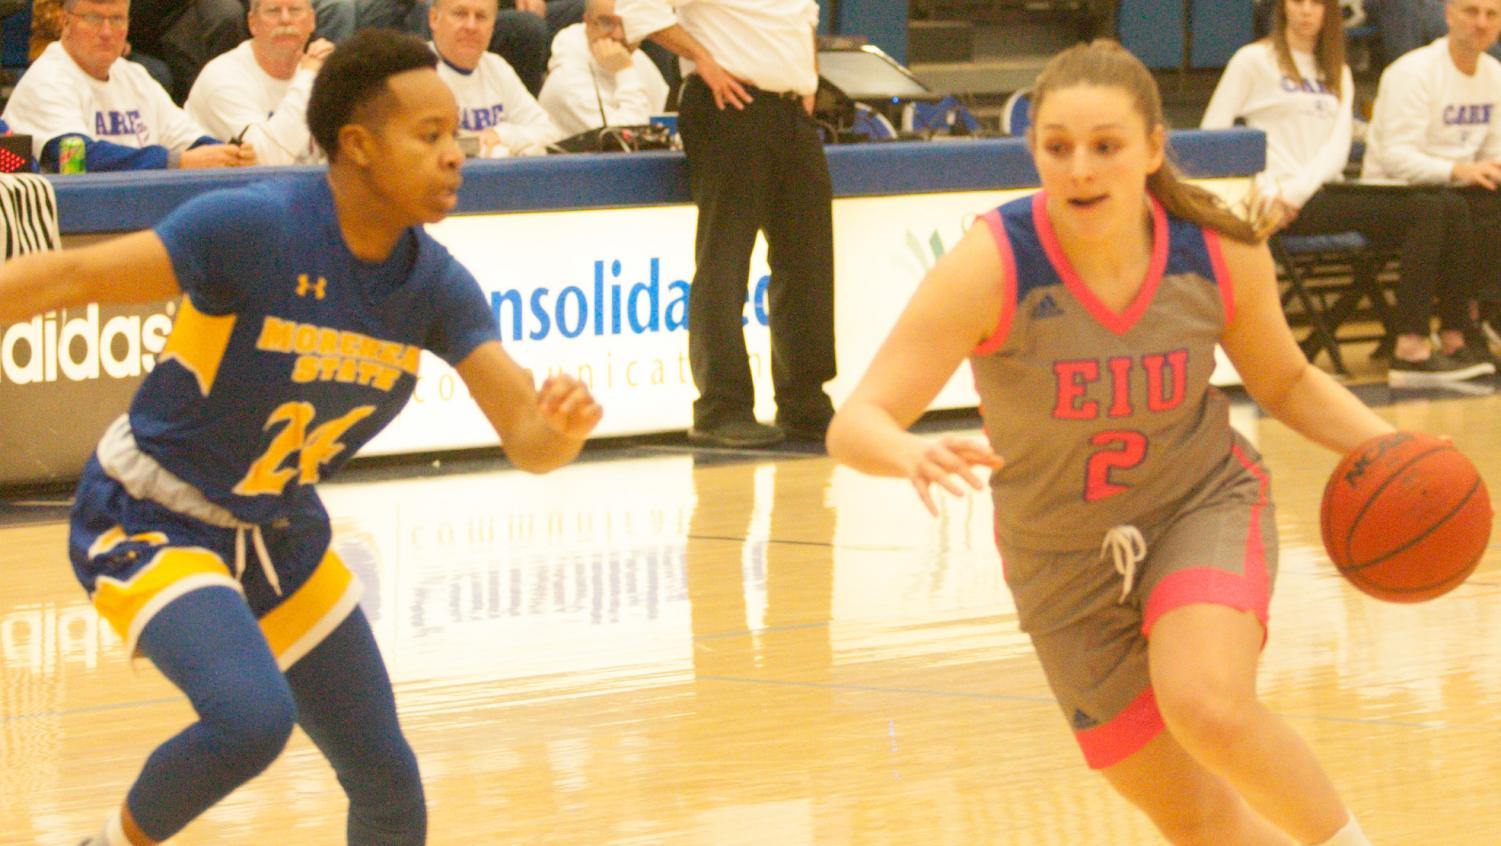 Eastern guard Jordyn Hughes drives on a defender against Morehead State on Feb. 8 in Lantz Arena. The Panthers won the game 67-62 in overtime and Hughes recorded seven points.